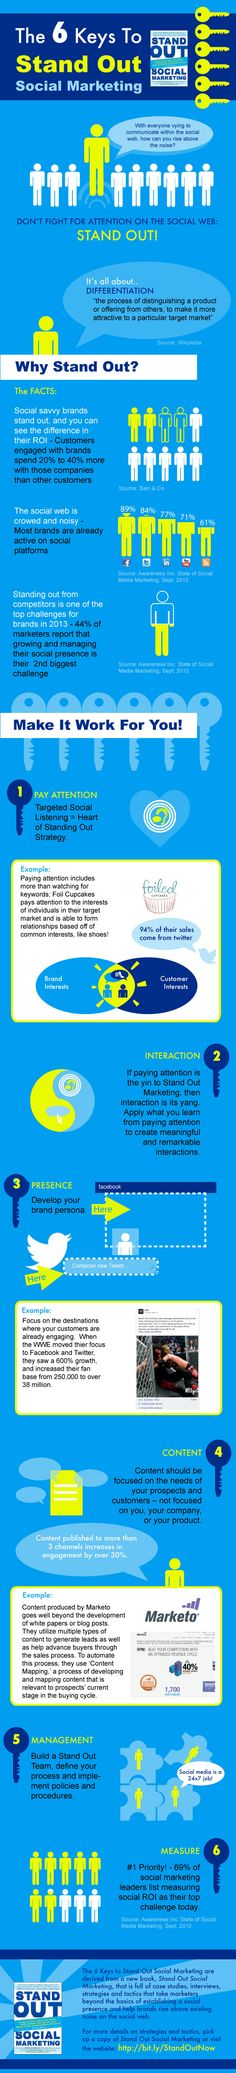 Great infographic from @awarenessinc #socialsjsu STAND OUT in social marketing